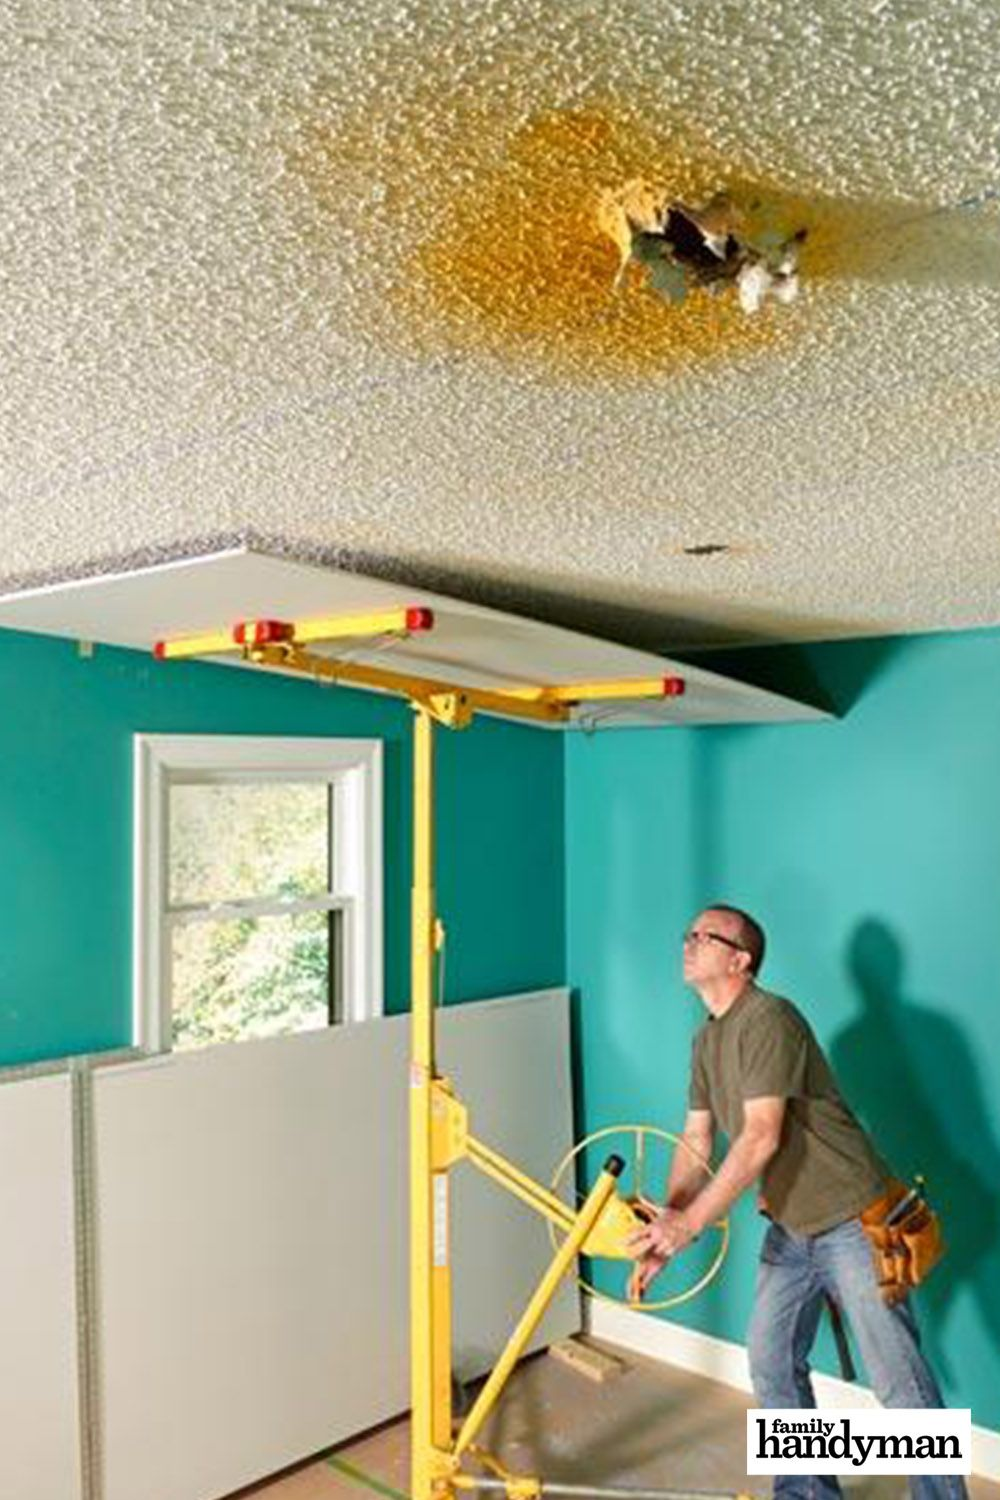 Why Remove Popcorn Ceiling When You Can Cover It With Drywall Popcorn Ceiling Removing Popcorn Ceiling Remodel Bedroom